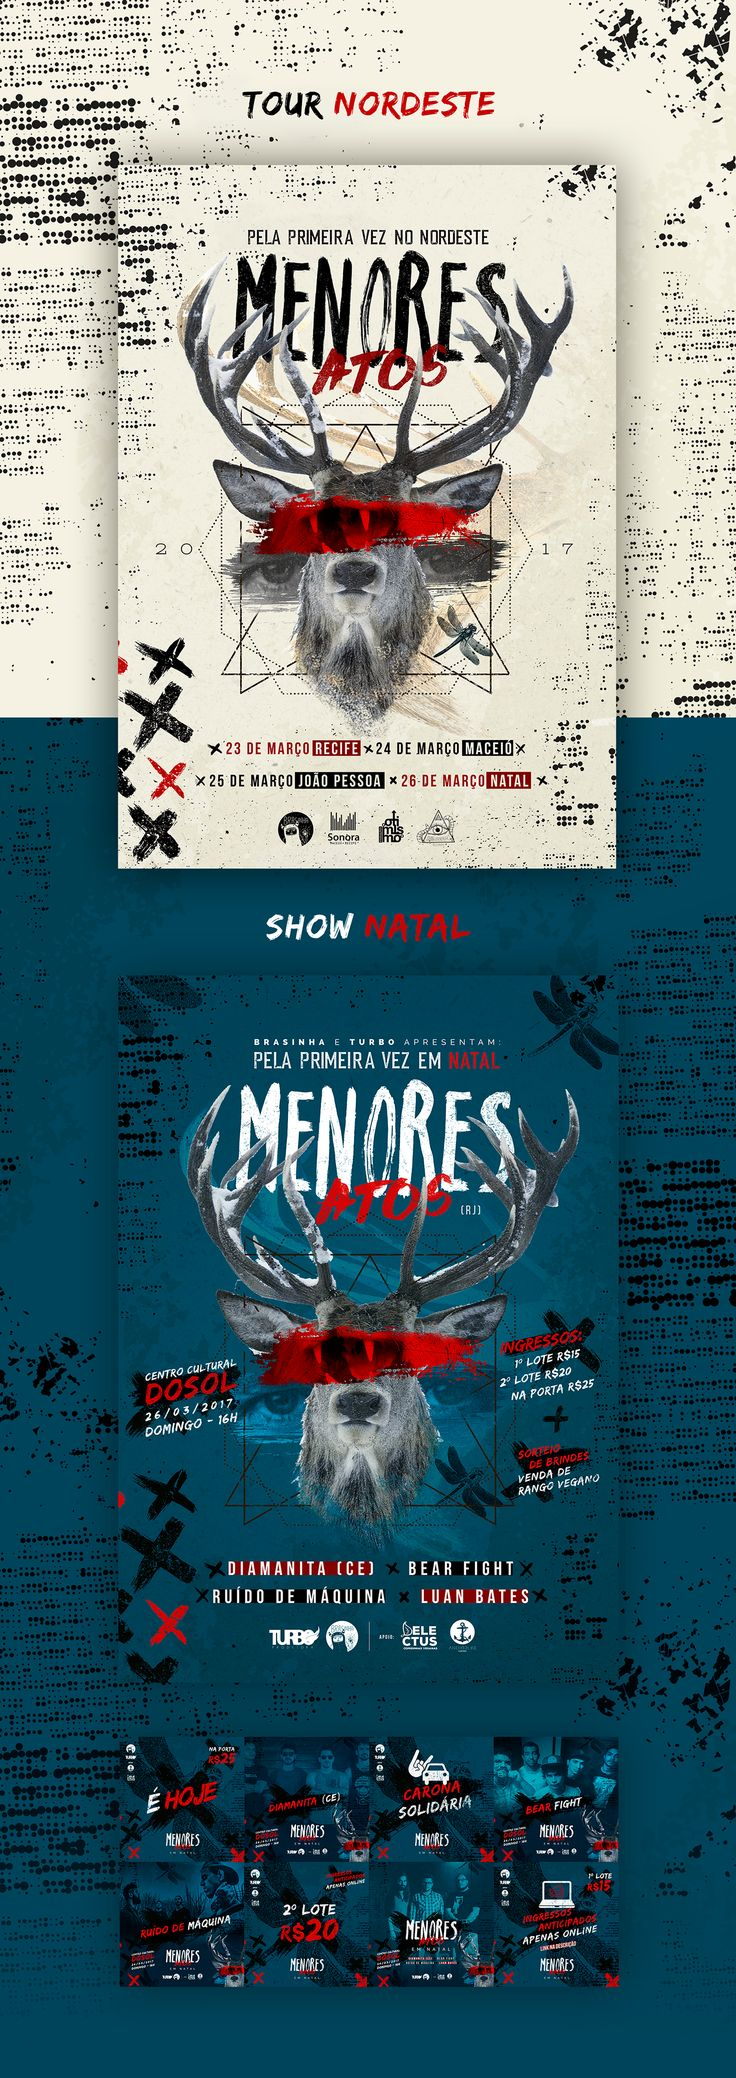 Poster design with a lot of text - Menores Atos Rj Tour Nordeste On Behance